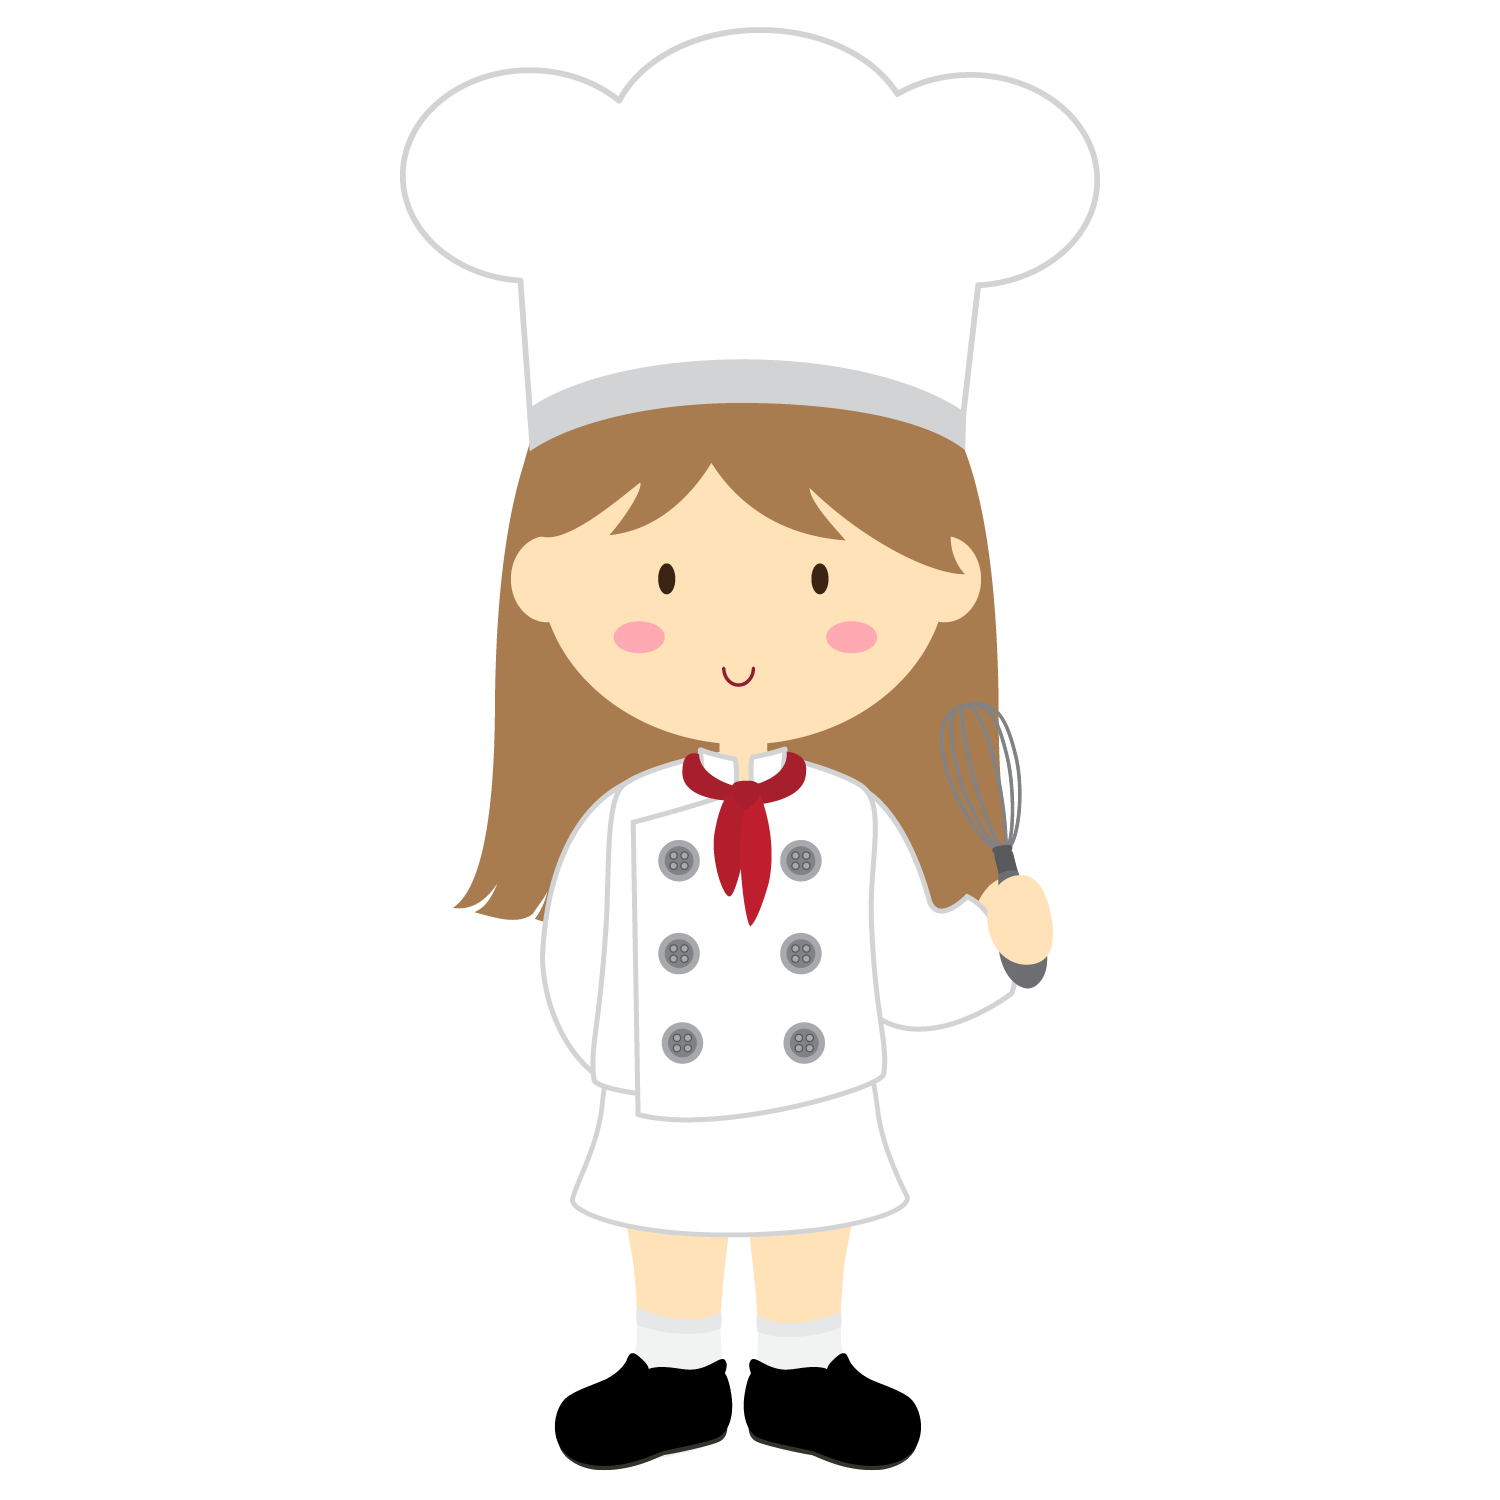 Child chef clipart svg freeuse download Pin by Hana on Dekorace | Clip art, Cartoon chef, Kitchen art svg freeuse download